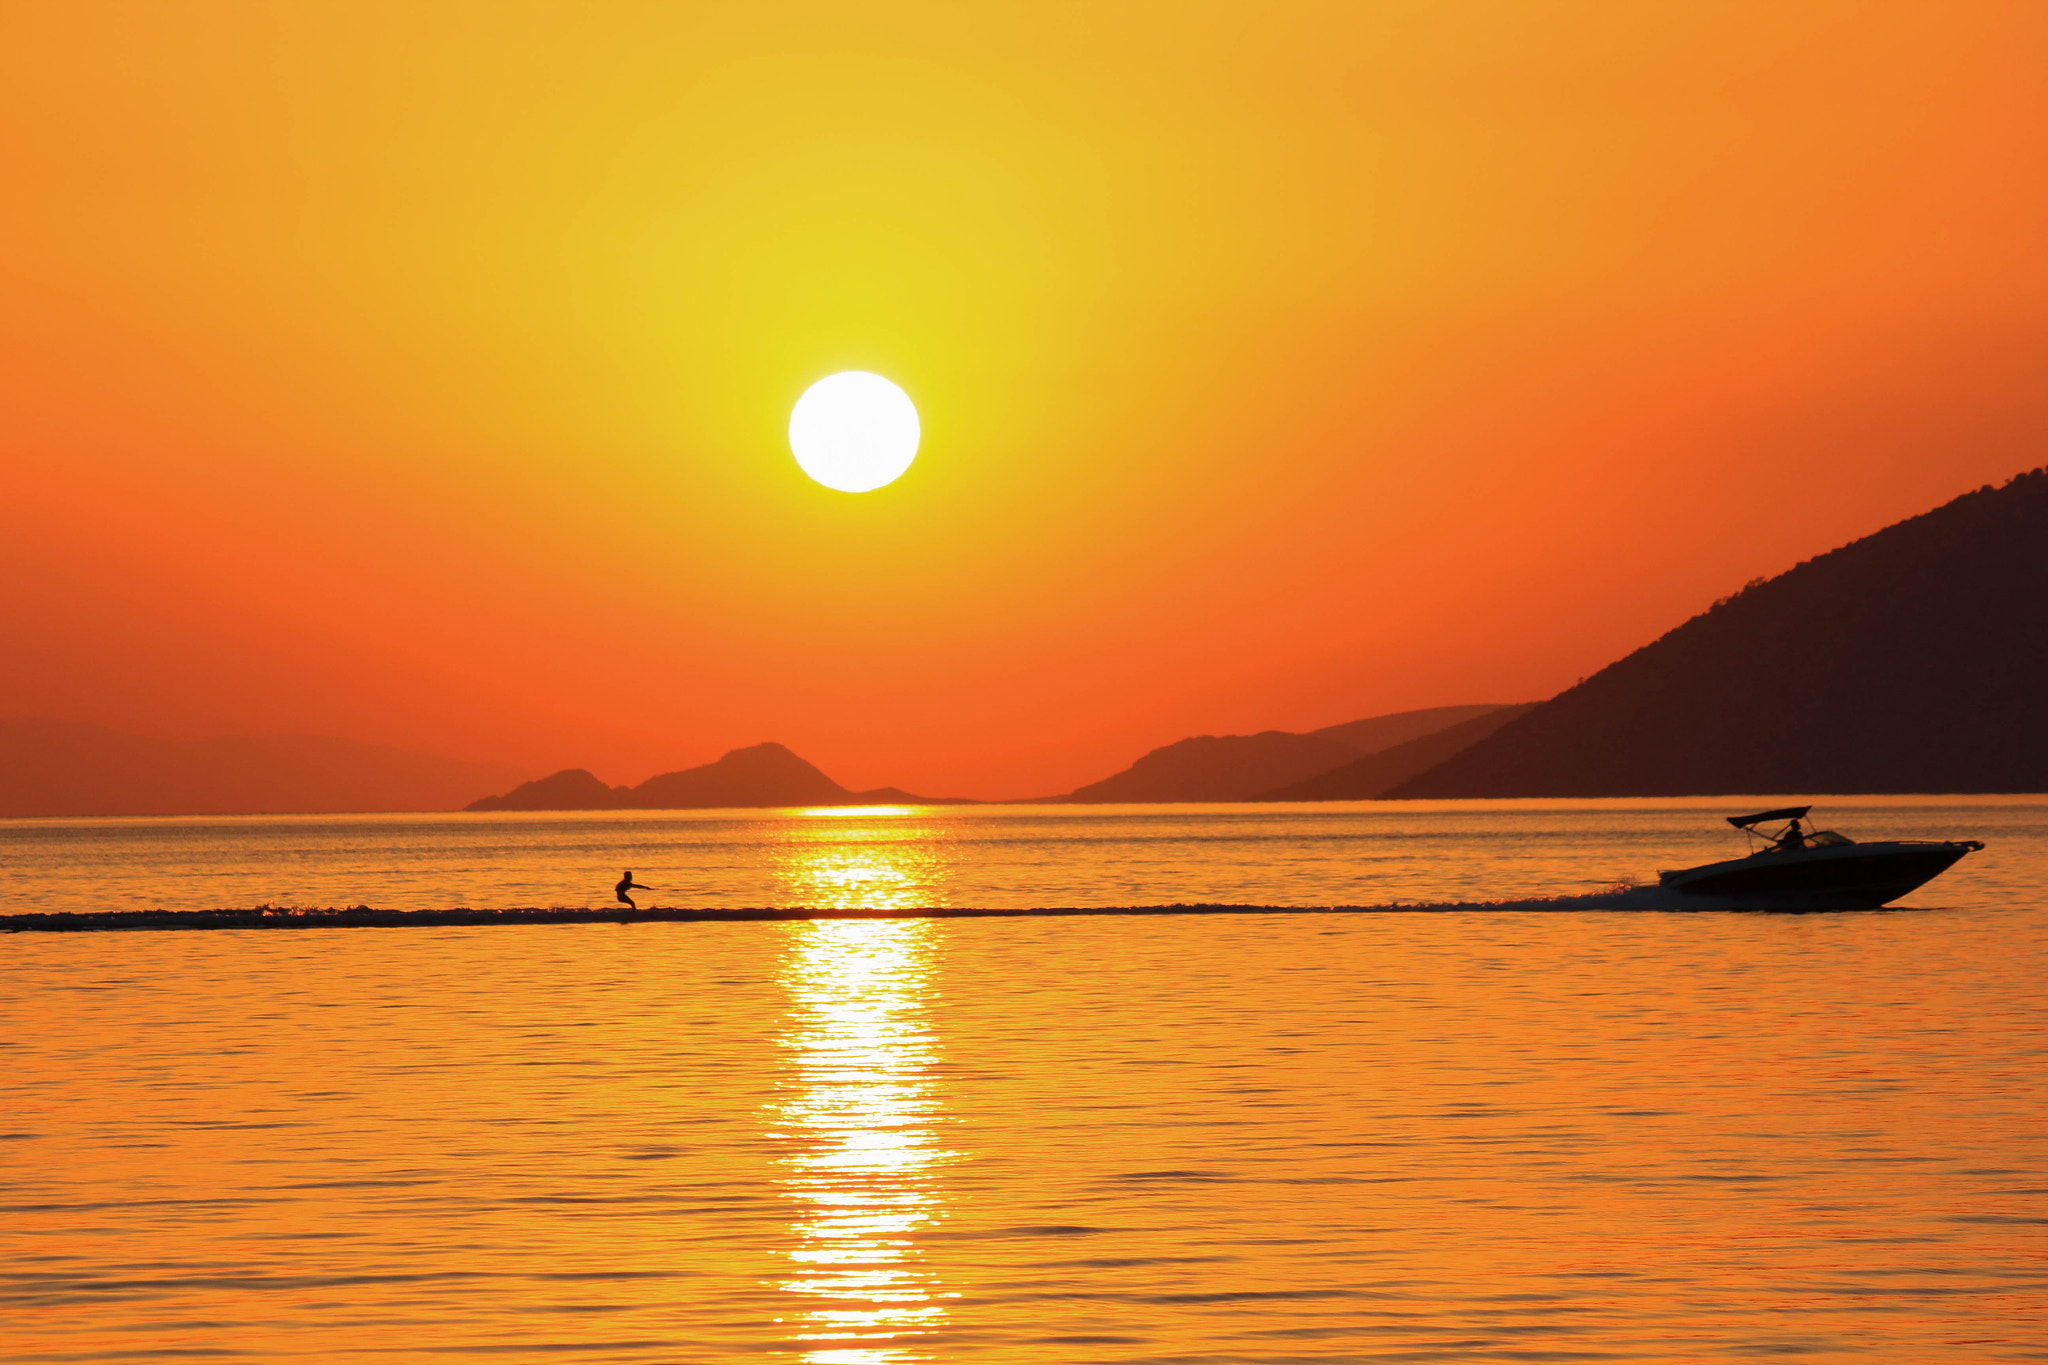 Photograph Water skiing at sunset by Vagelis Pikoulas on 500px